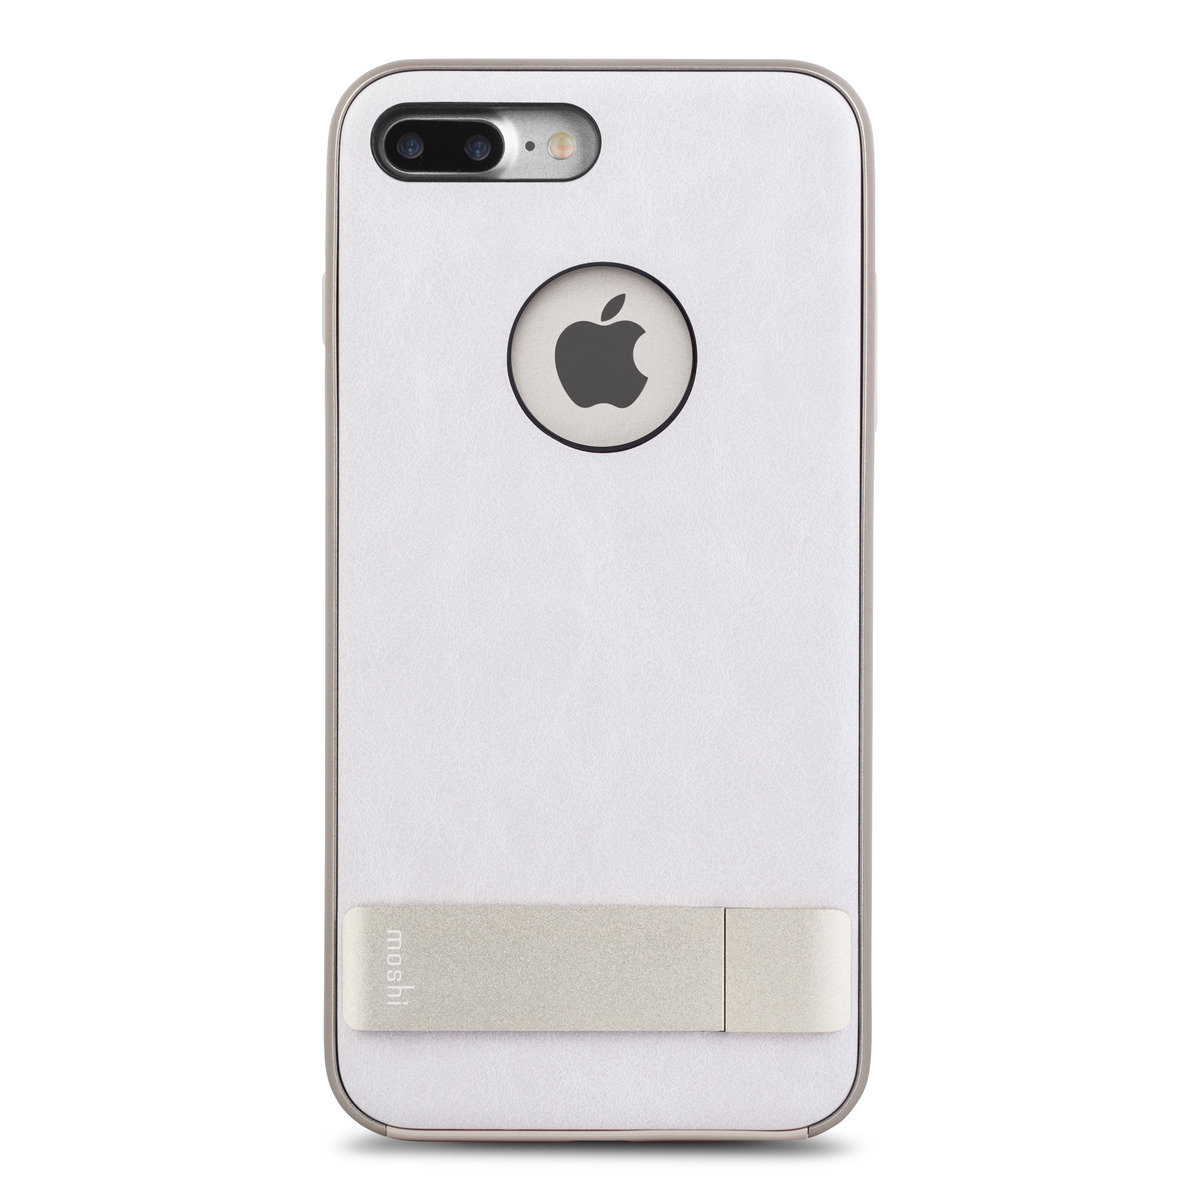 "Kameleon for iPhone7 Plus 5.5""- Ivory White"